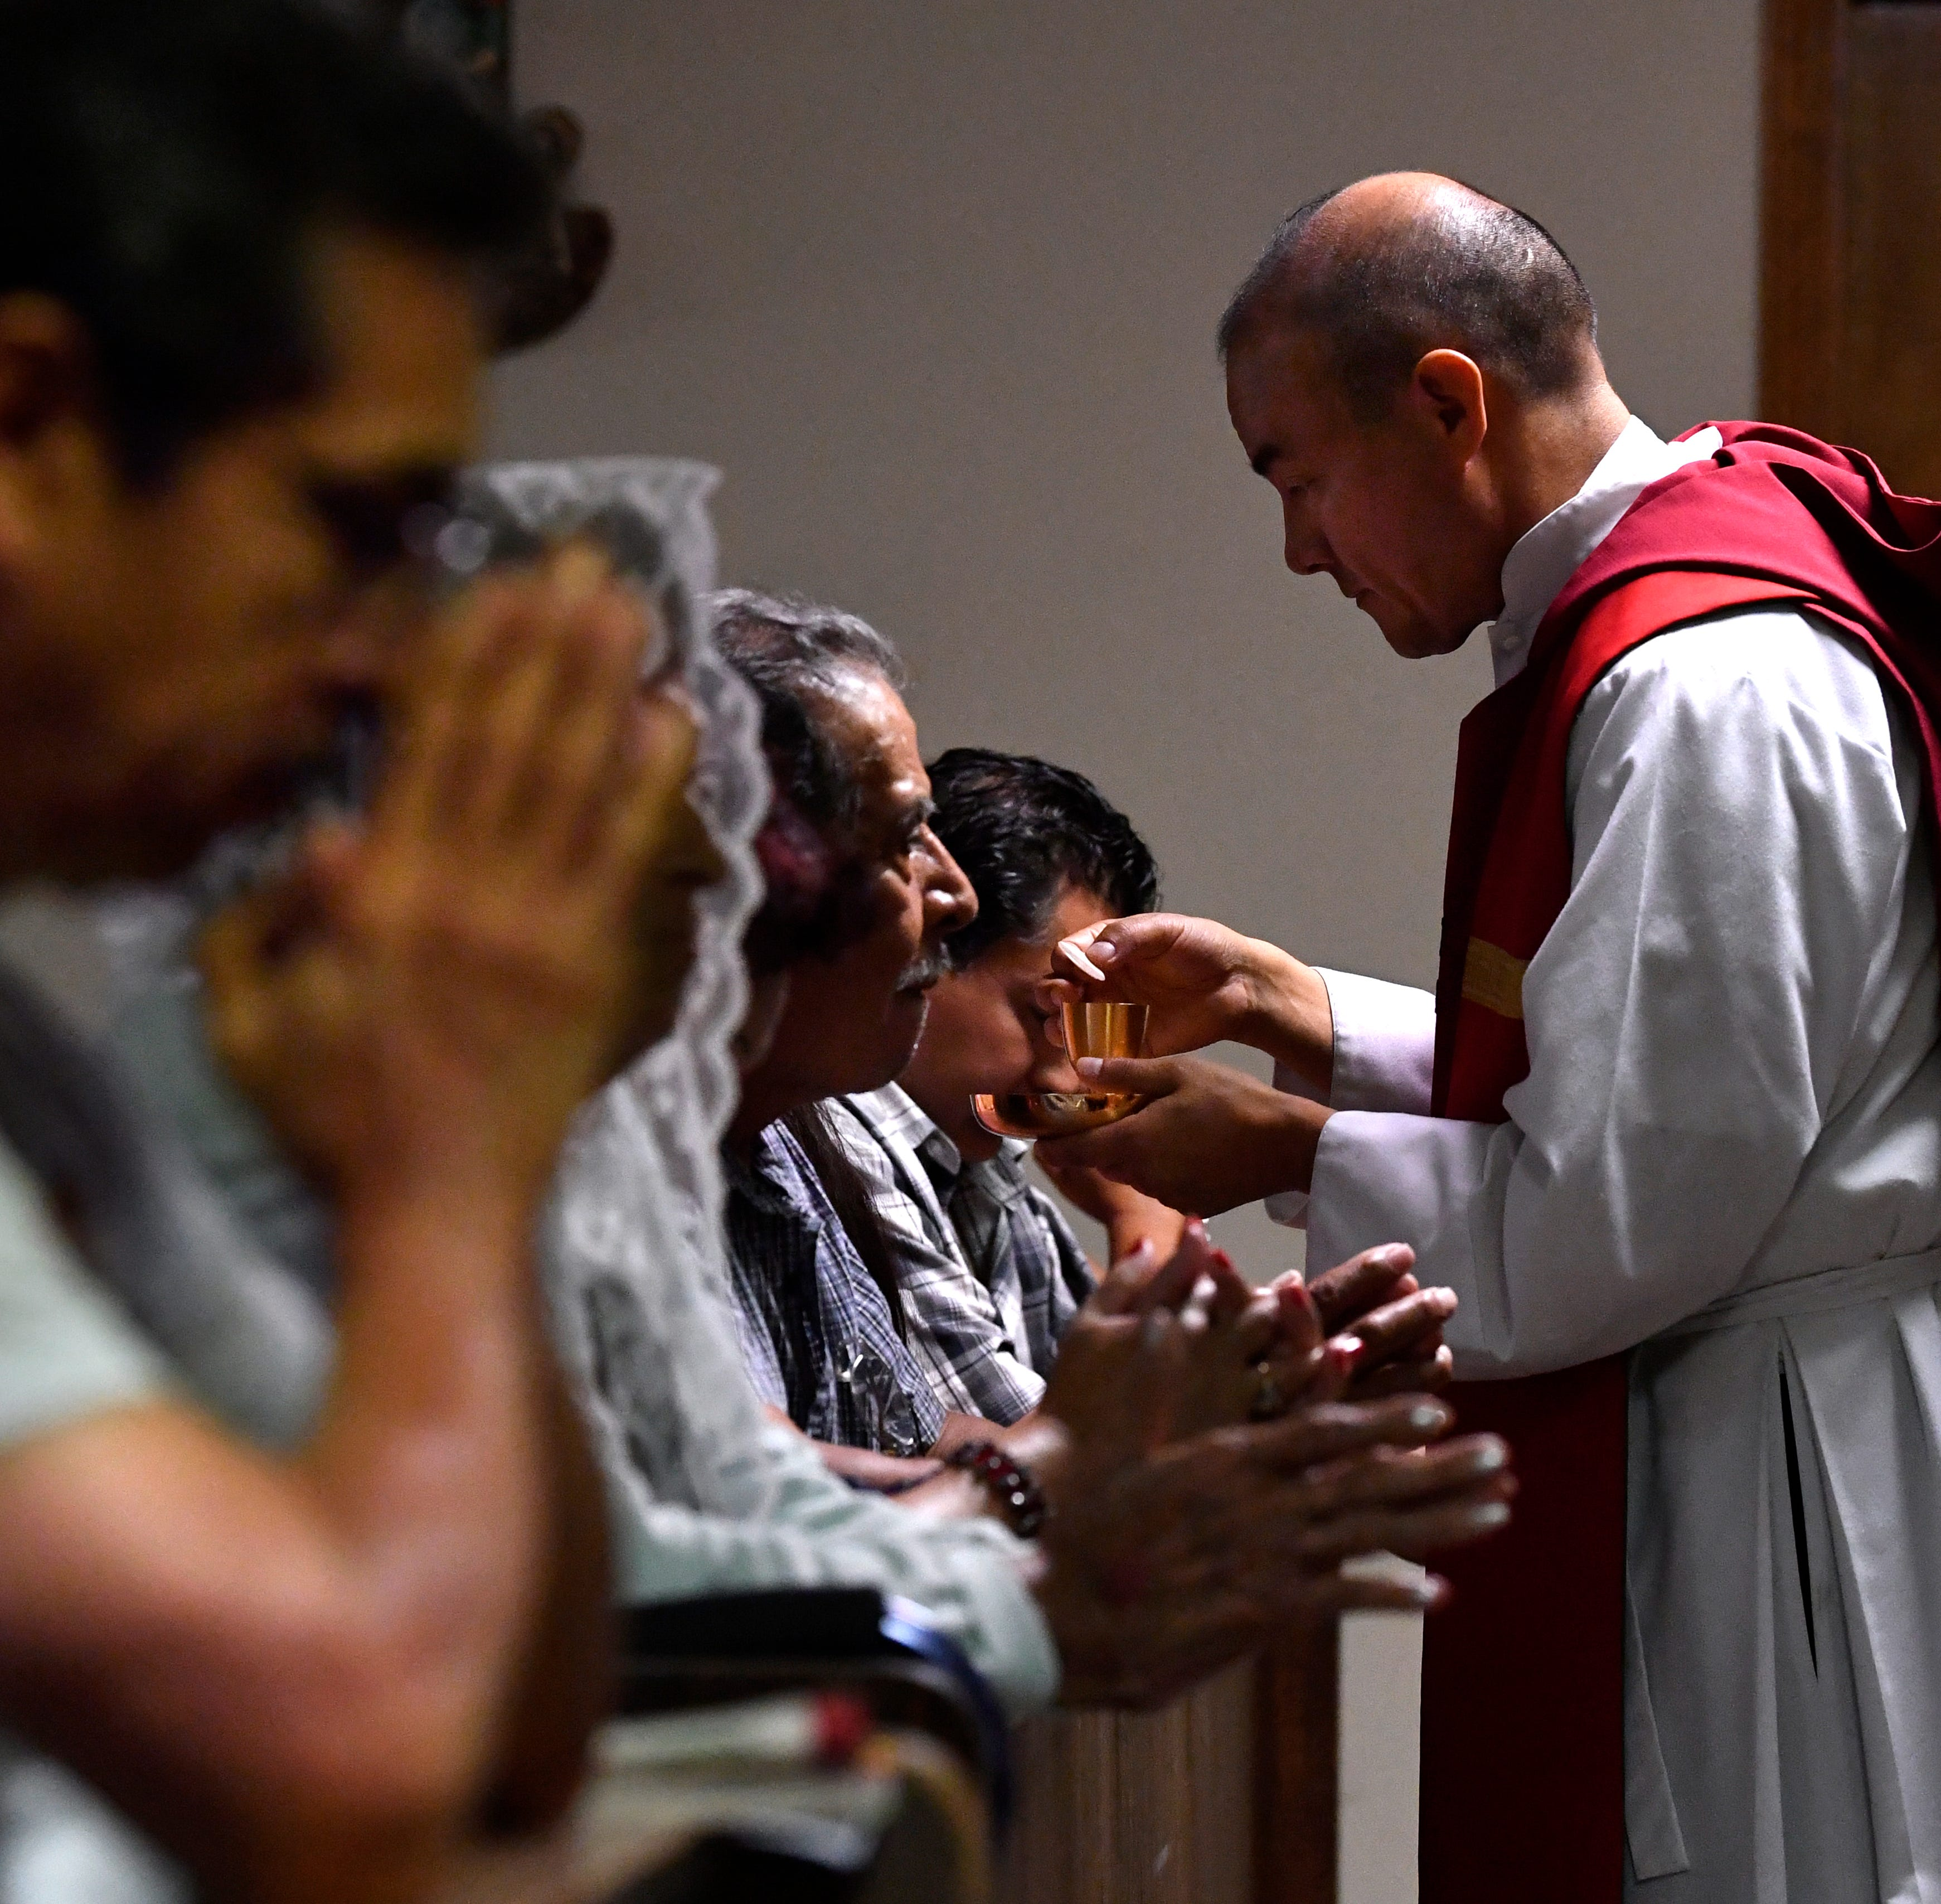 Well-traveled road brings Mexican-born priest to St. Vincent's in Abilene